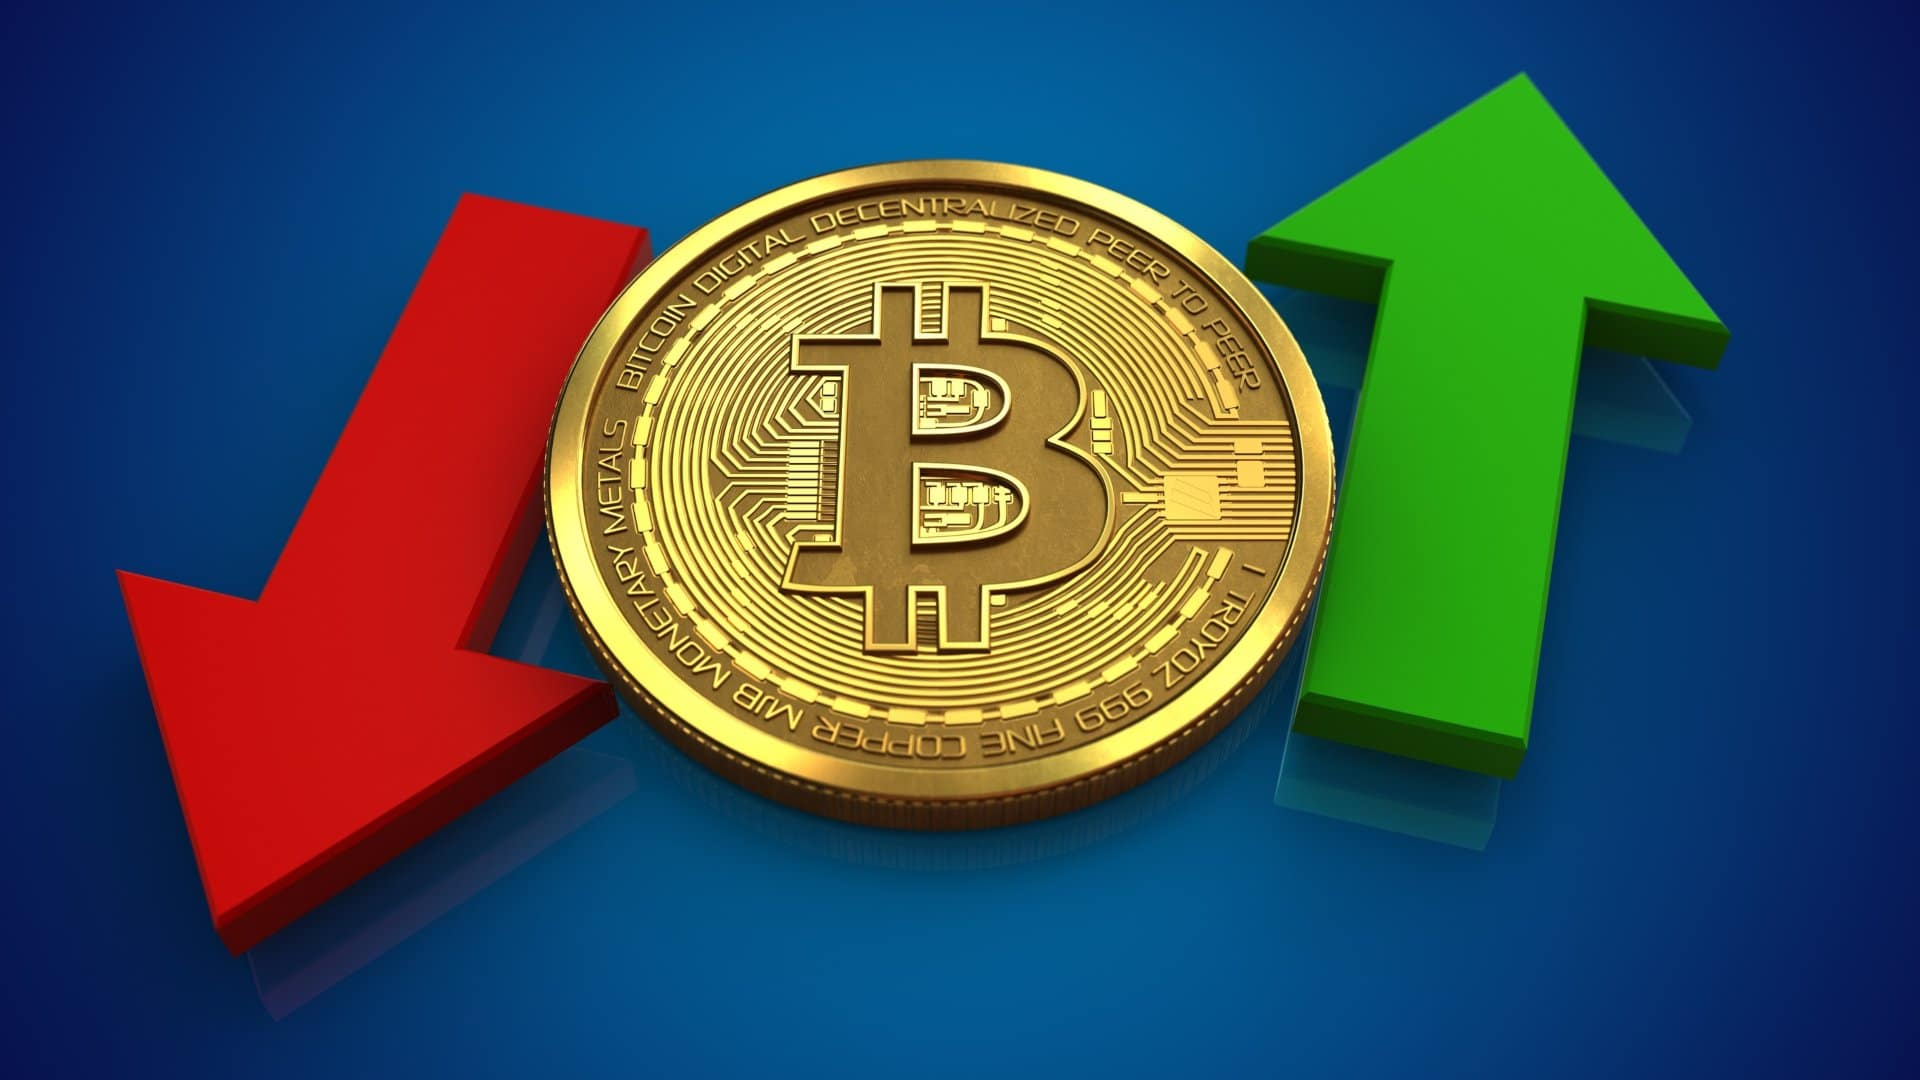 Bitcoin: the price goes up and down